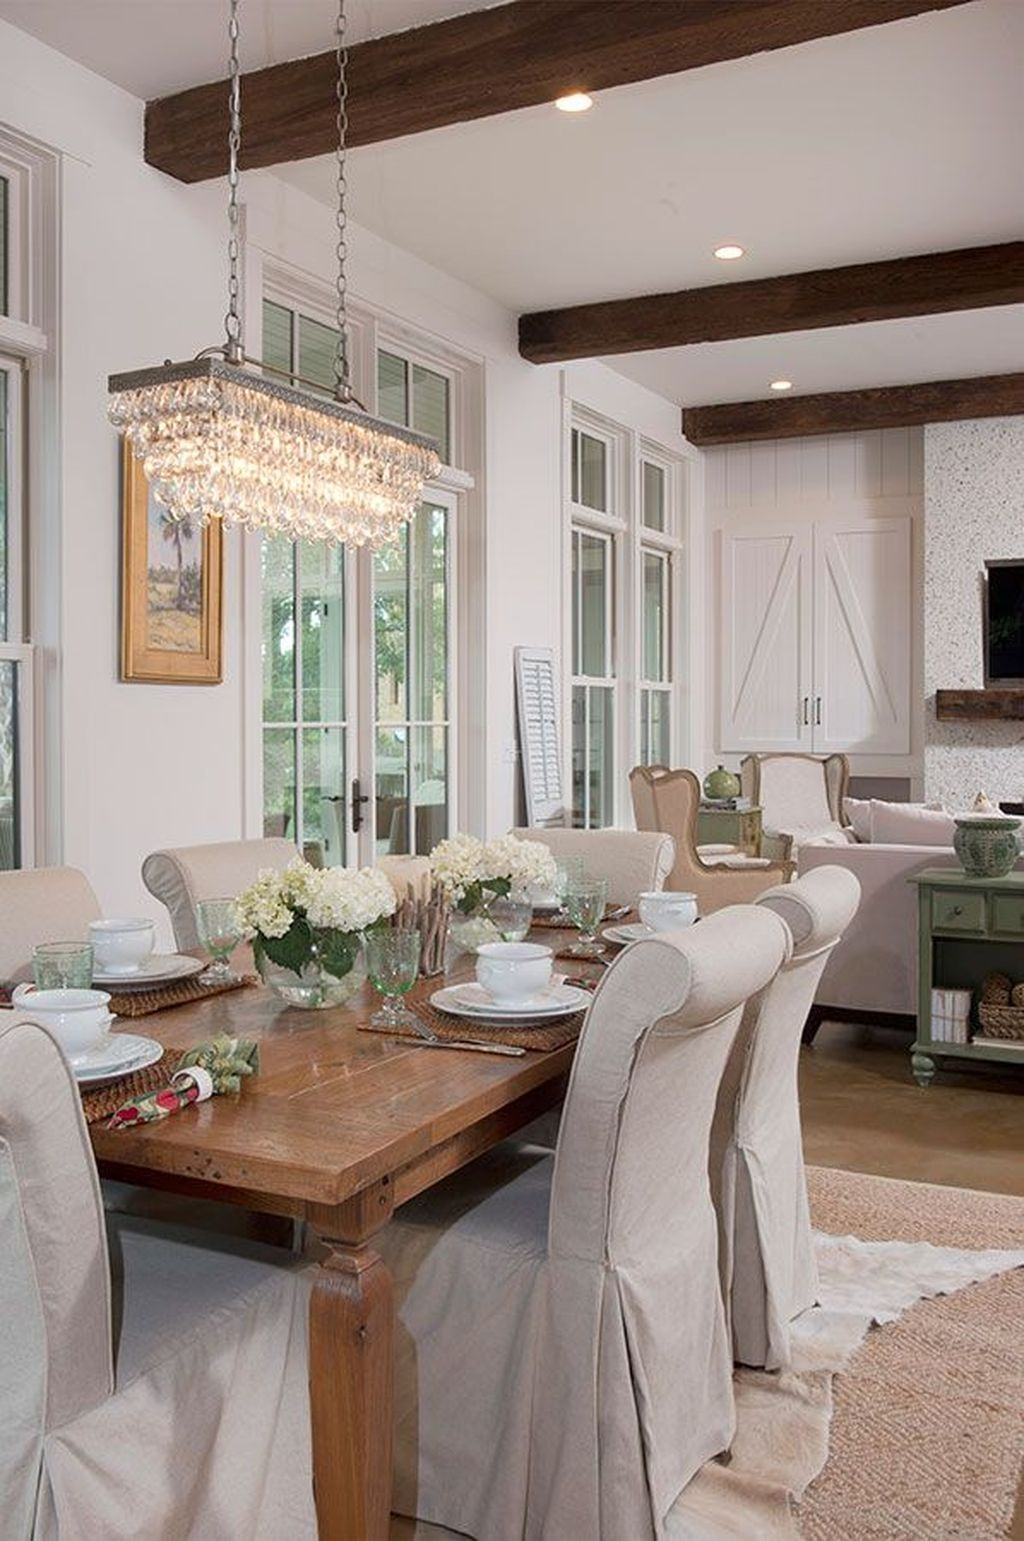 Amazing Rustic Dining Room Table Decor Ideas 02